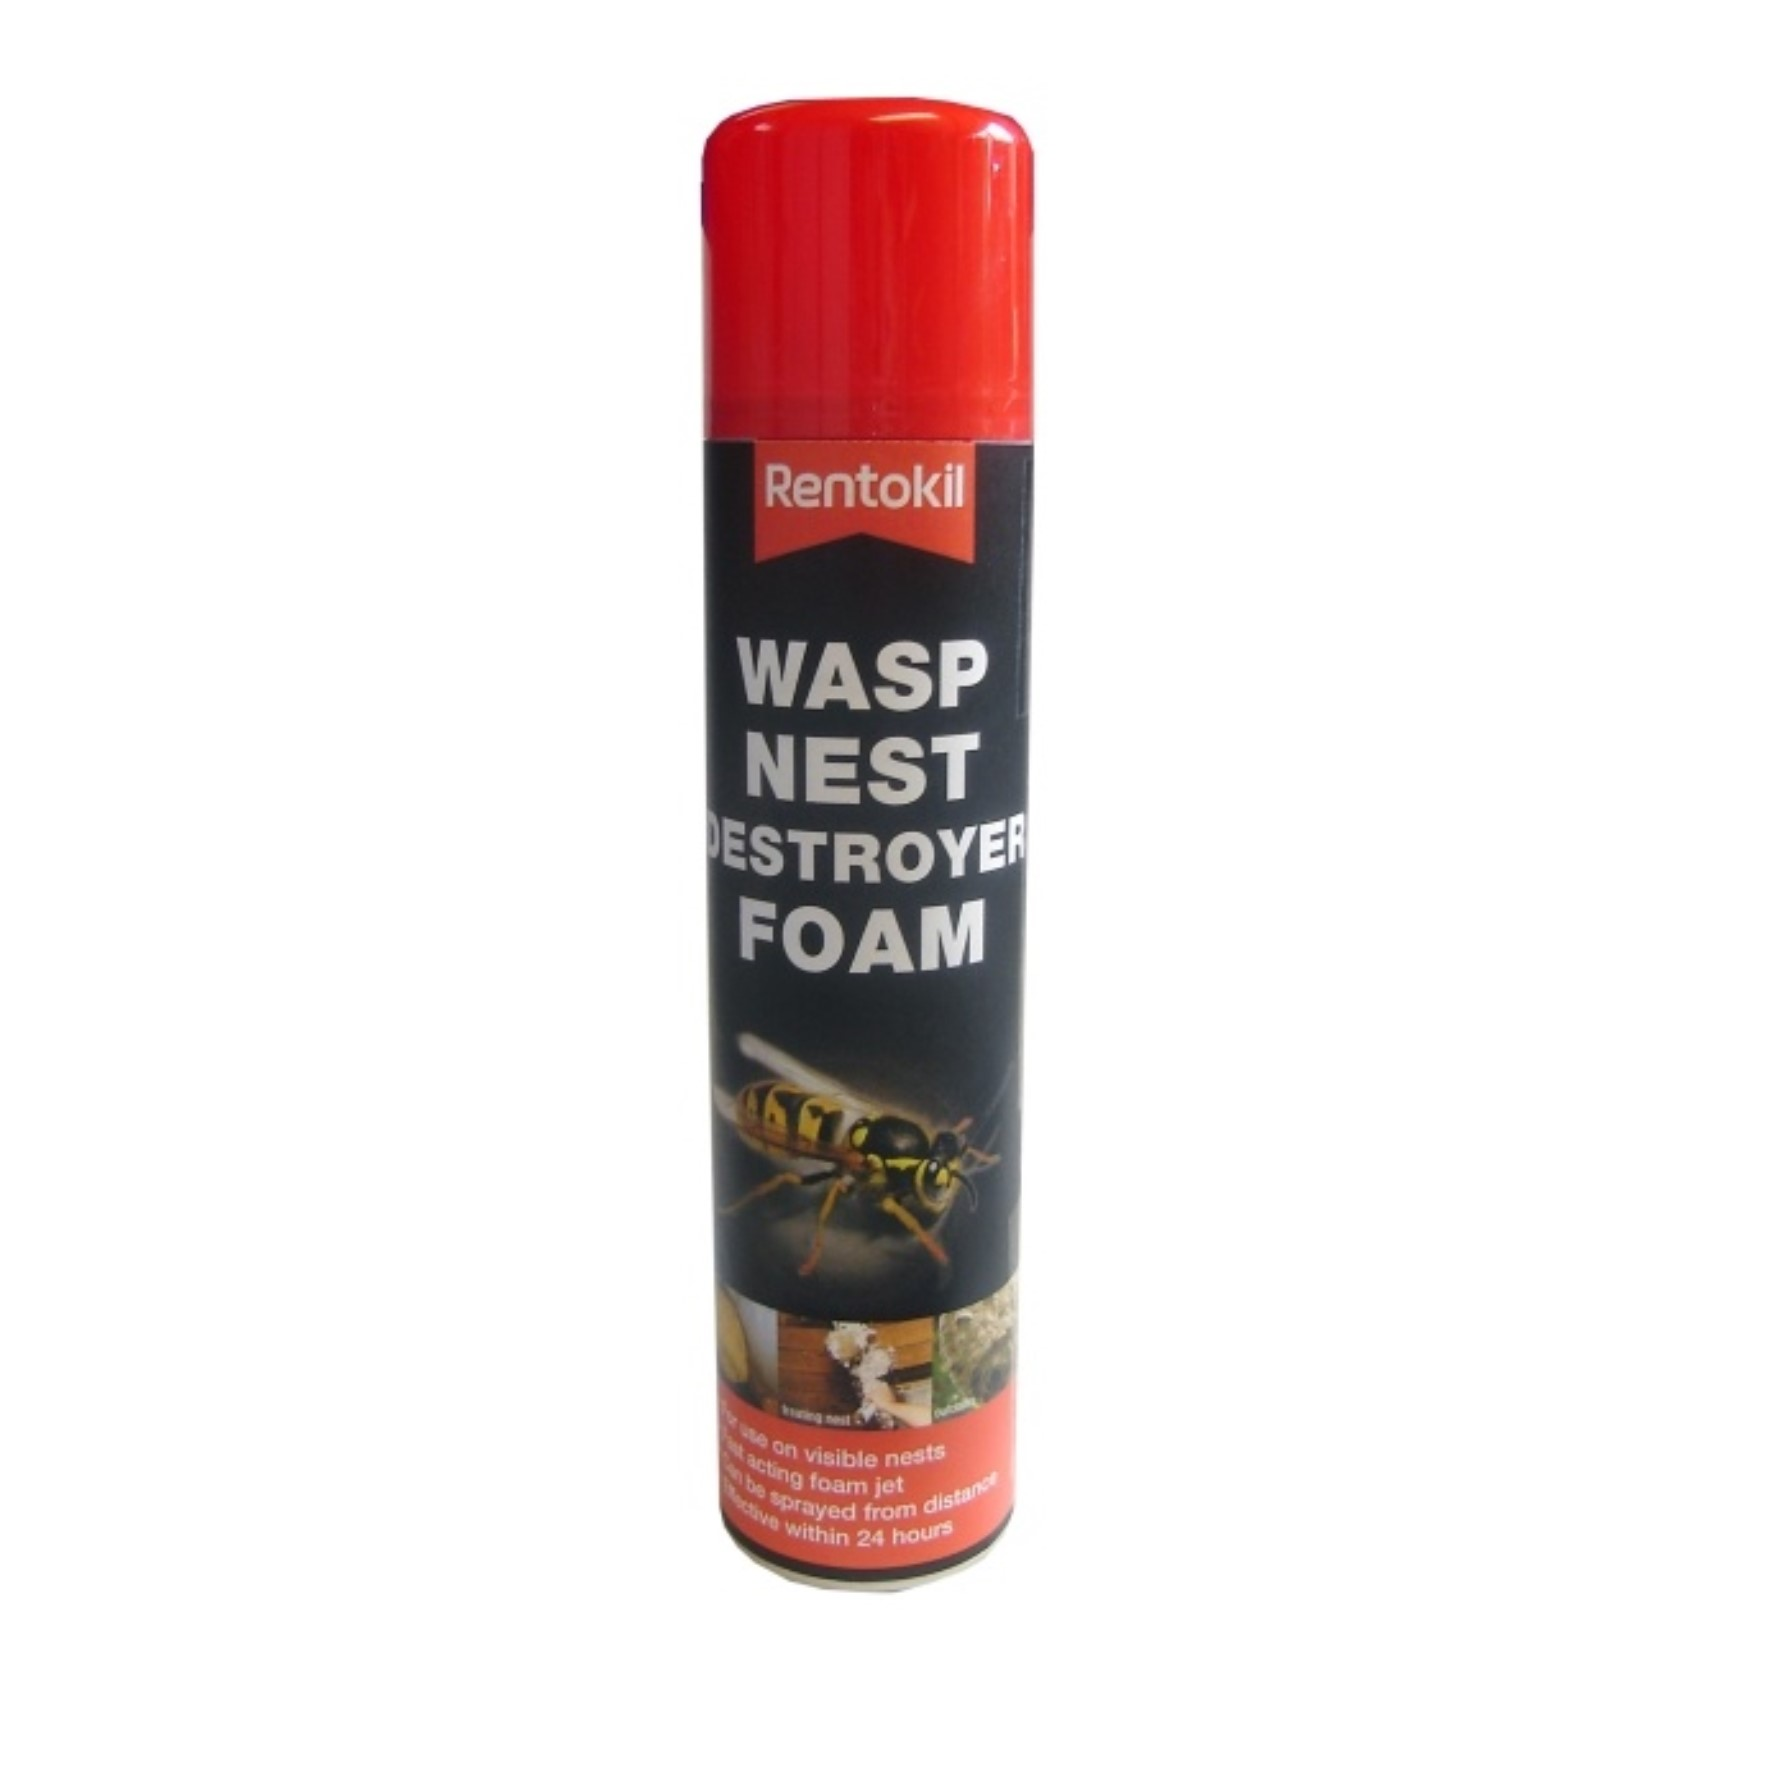 Wasp Nest Destroyer Foam